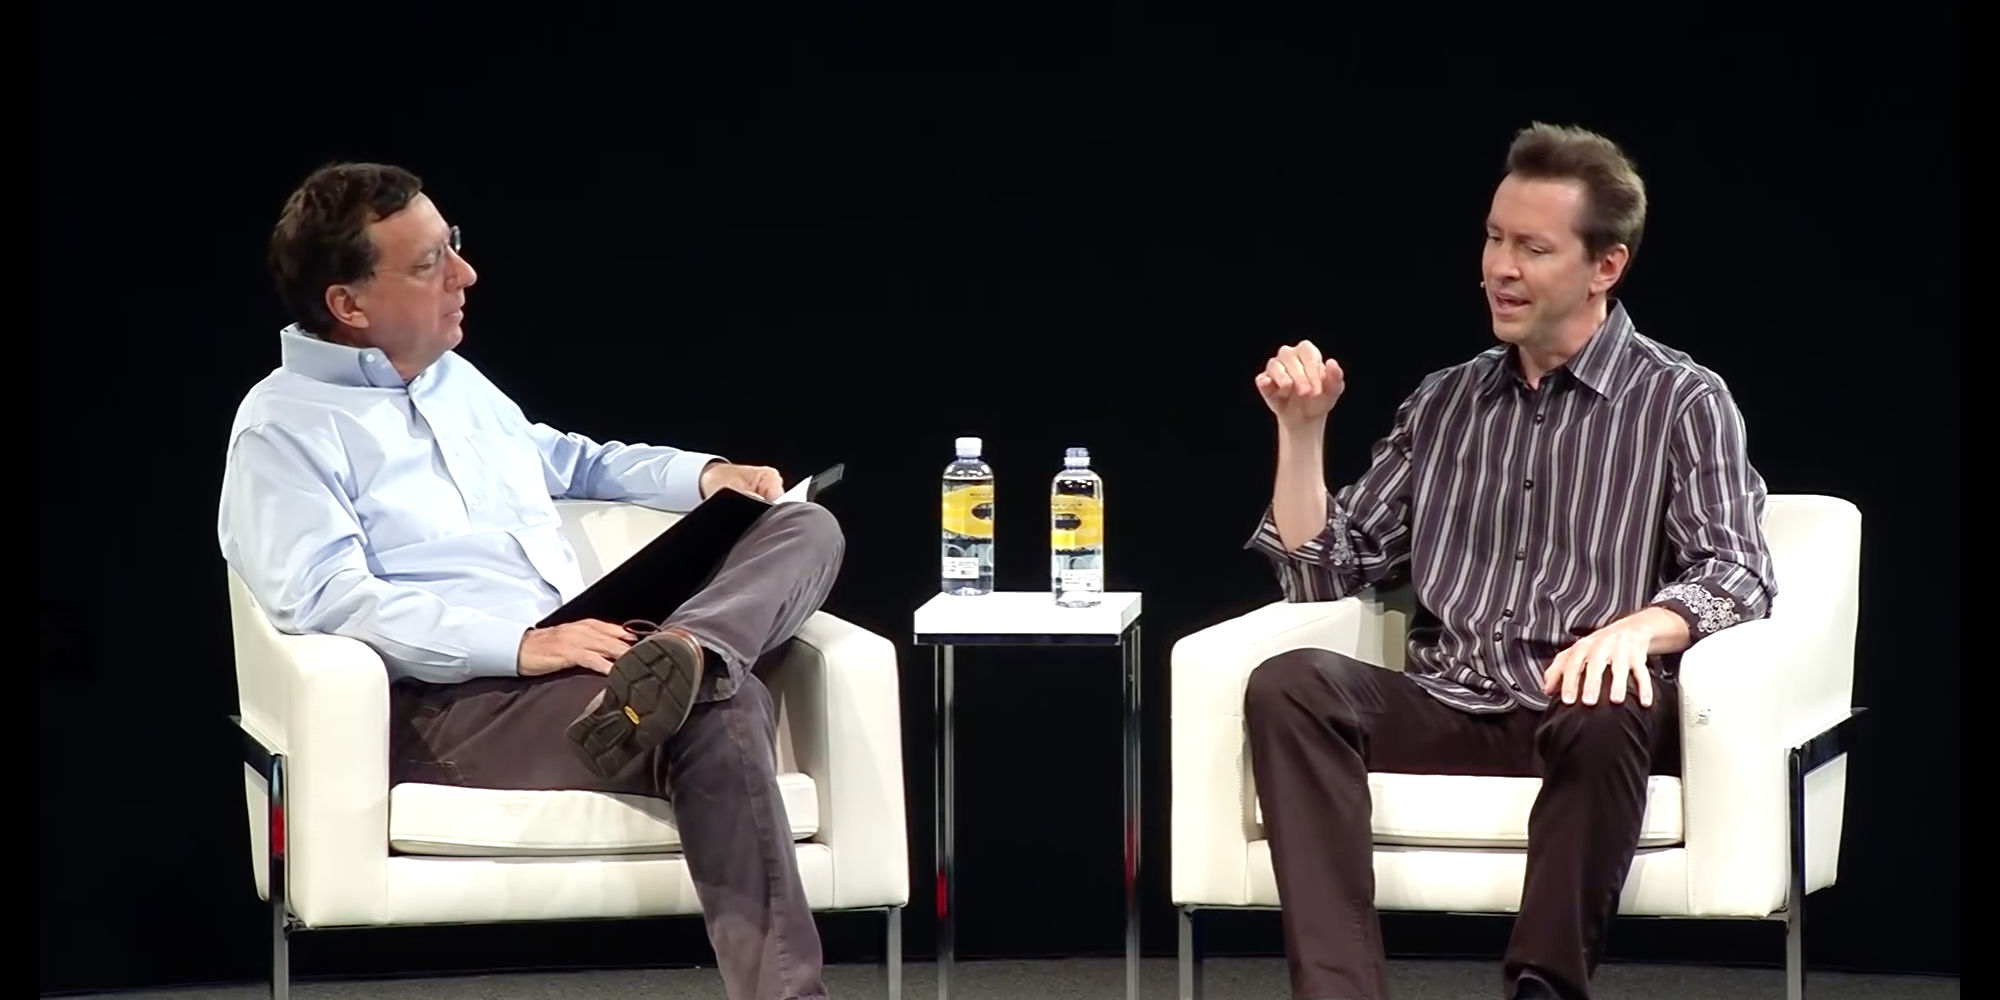 Scott Forstall interviewed by John Markoff